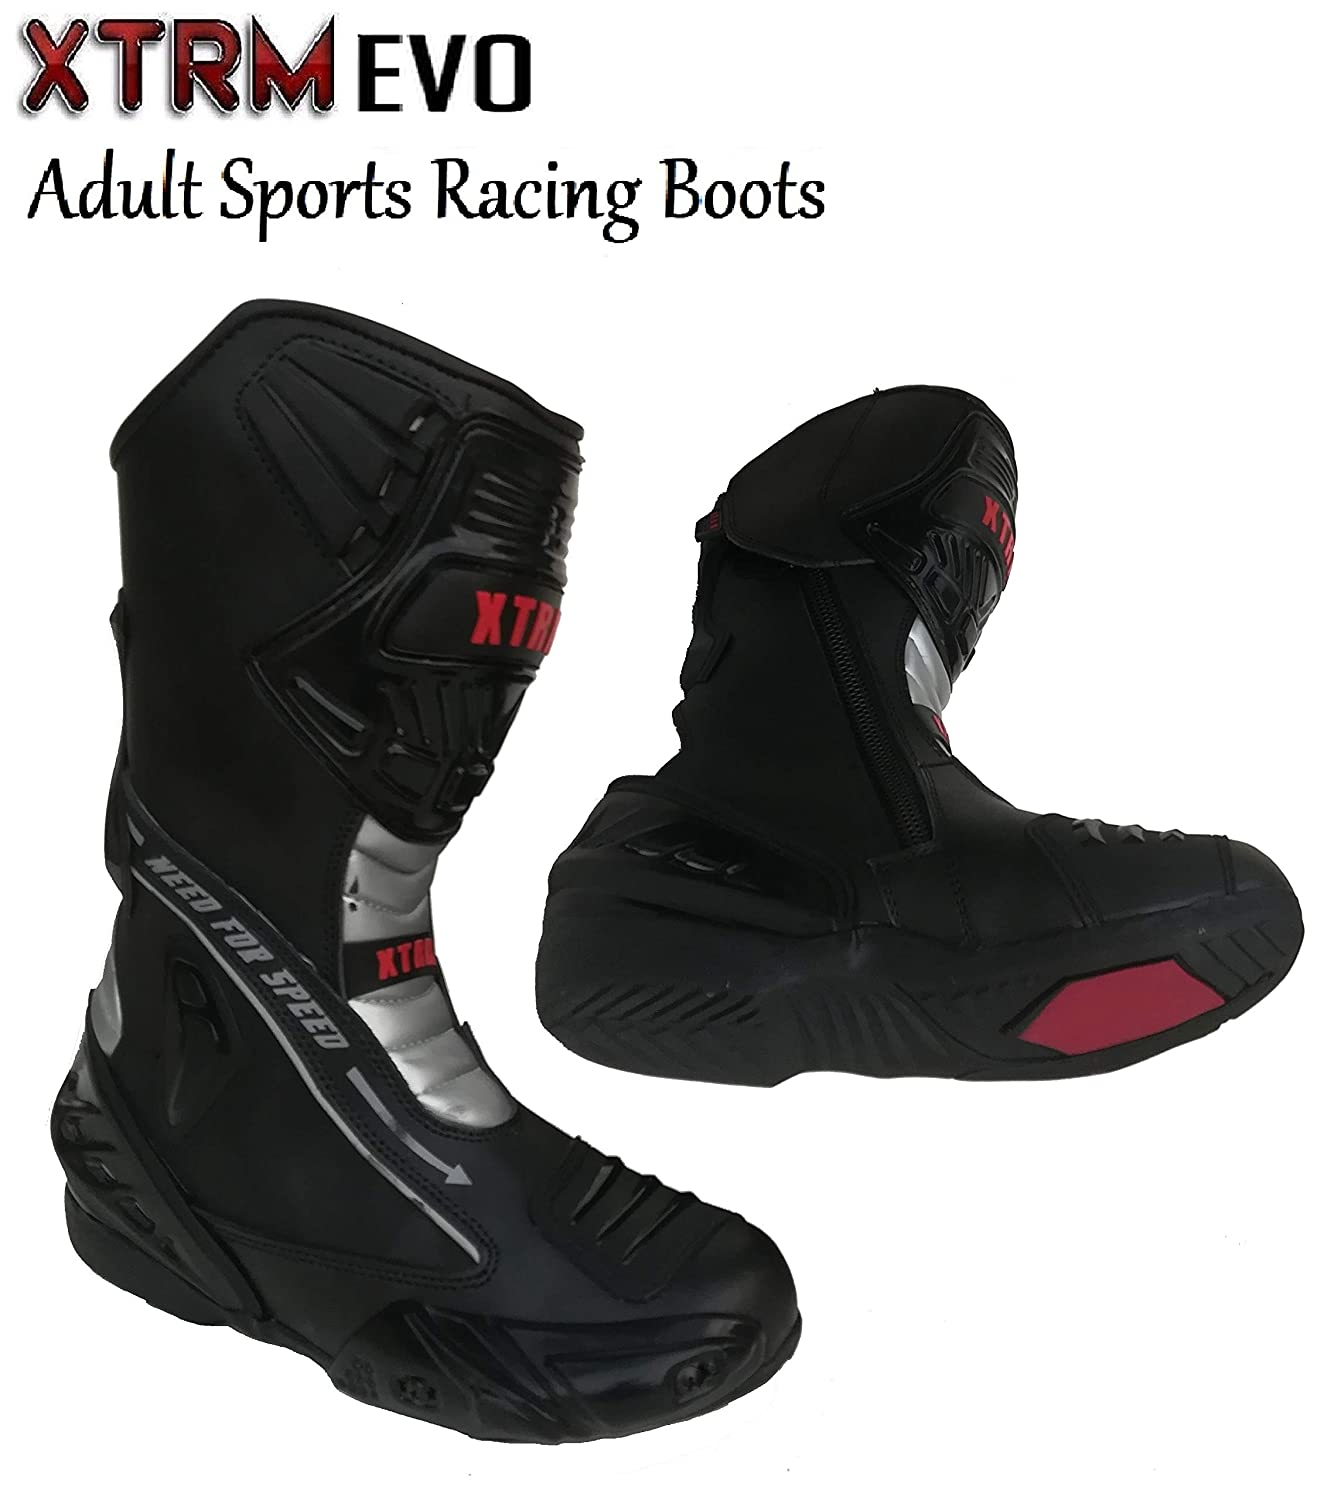 XTRM Motorcycle Sports Boots BLADE Adult Motorbike Mens On Road Racing Boots Heavy Duty Reinforced Black//Red